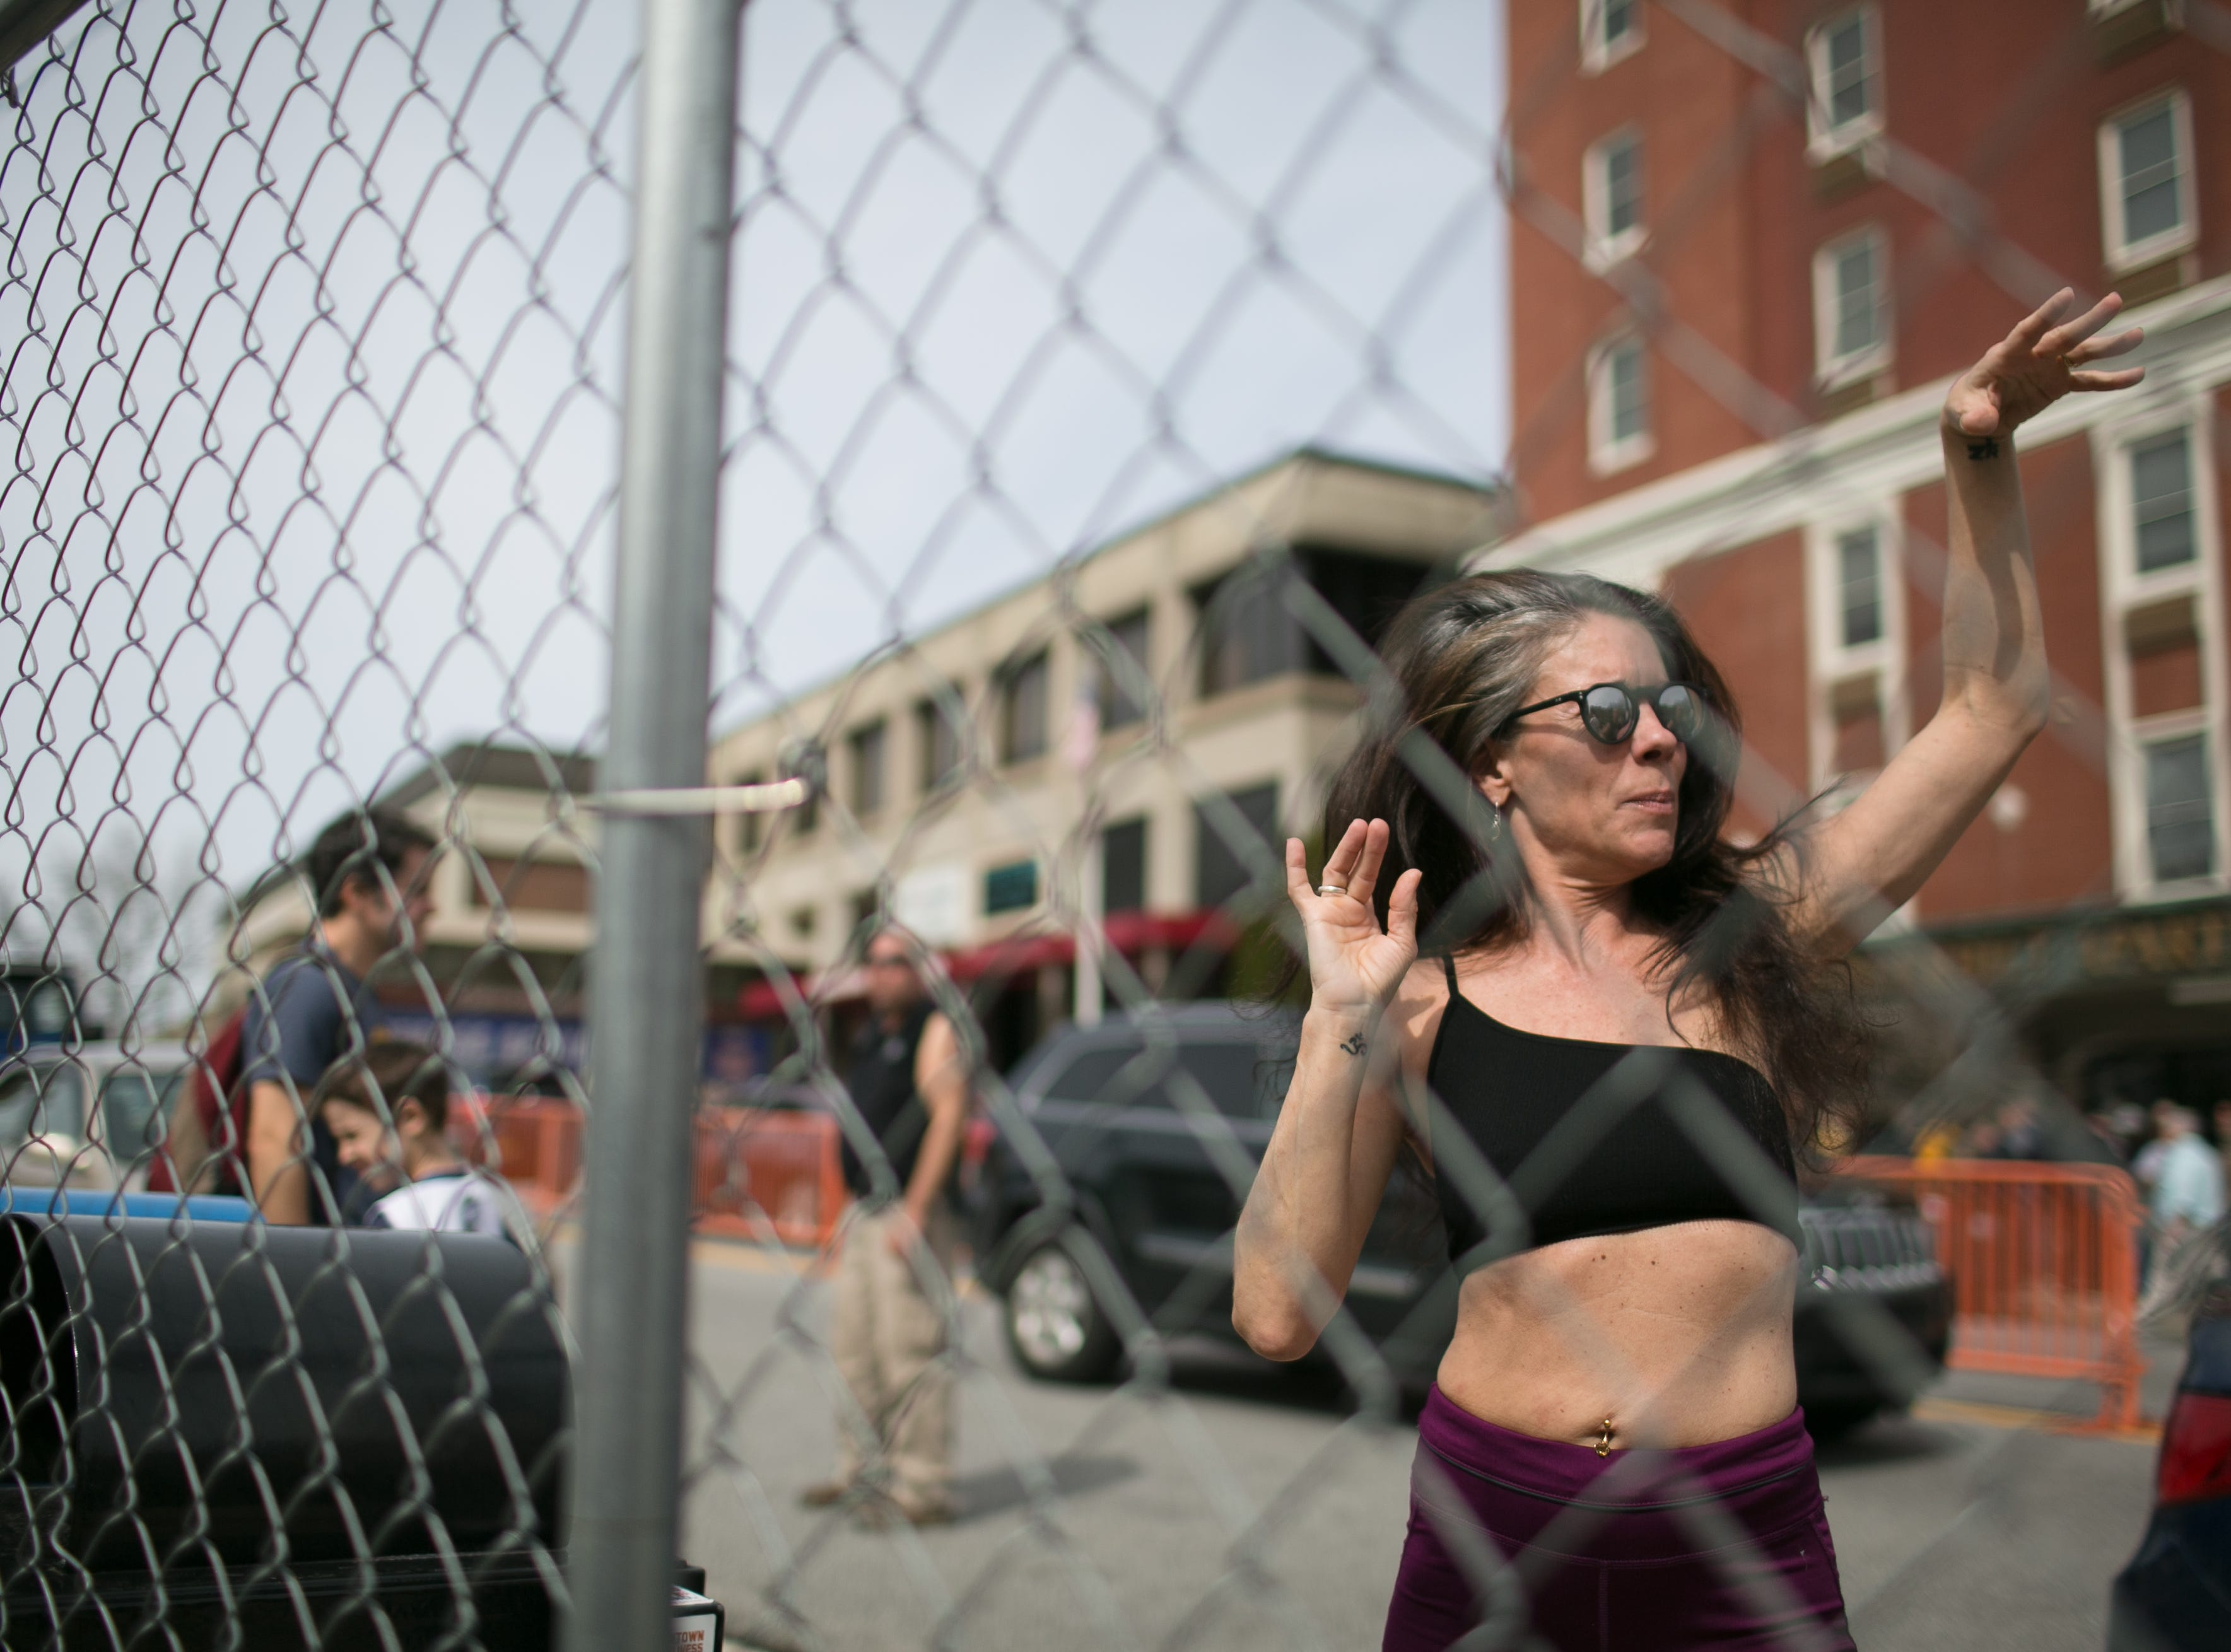 Fans dance as Lyric performs at the Ingles SoCon Fan Experience  across the street from the U.S. Cellular Center, at 68 Haywood St. in downtown Asheville, on March 10, 2019.